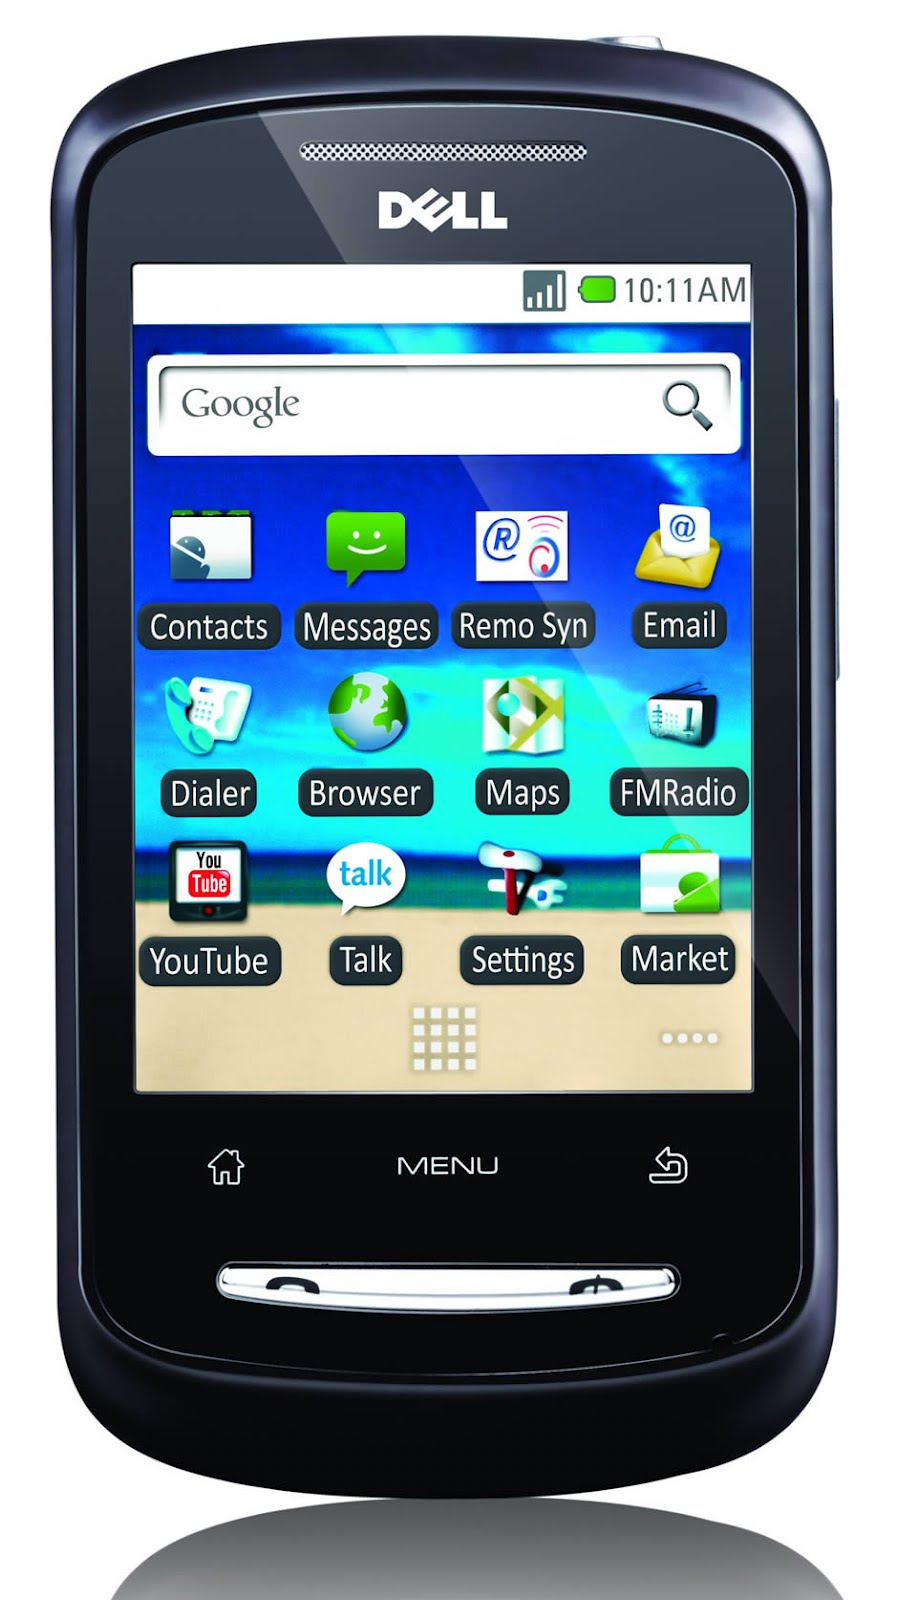 Dell XCD28 Smartphone User Manual Guidebook